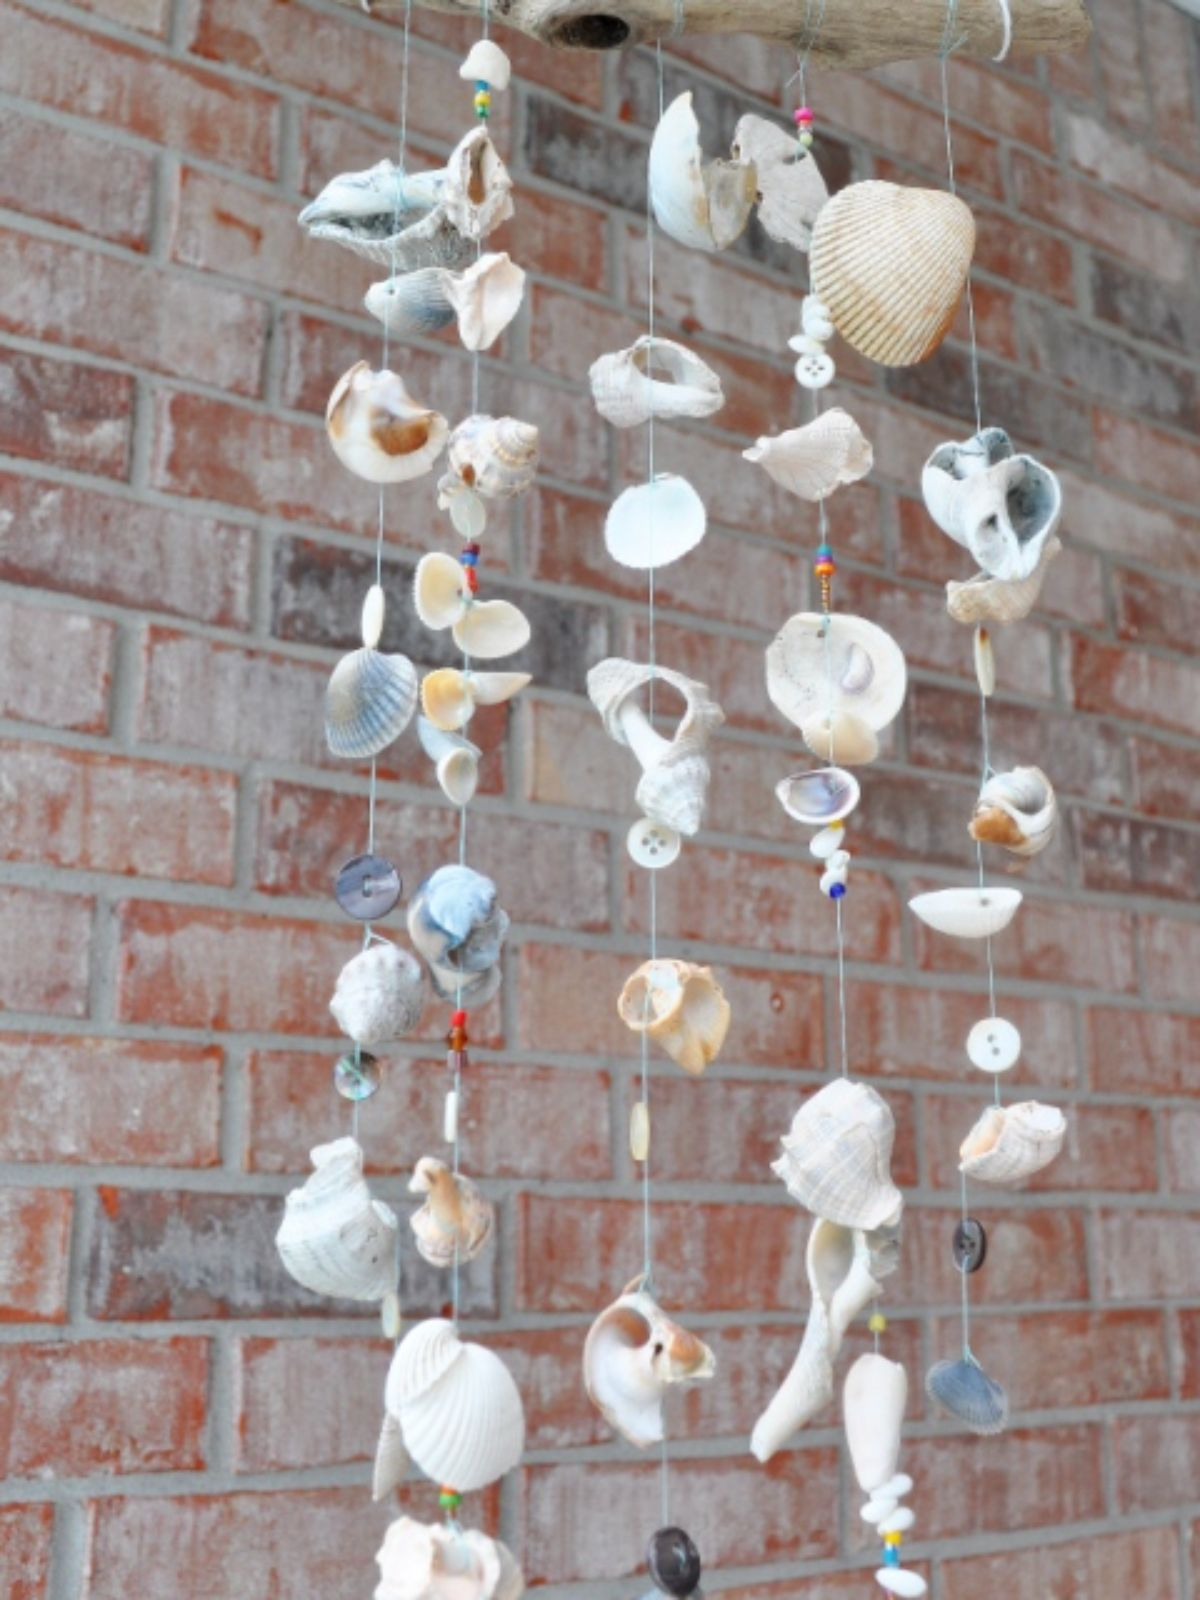 a wind chime made of seashells hangs in front of a brick wall